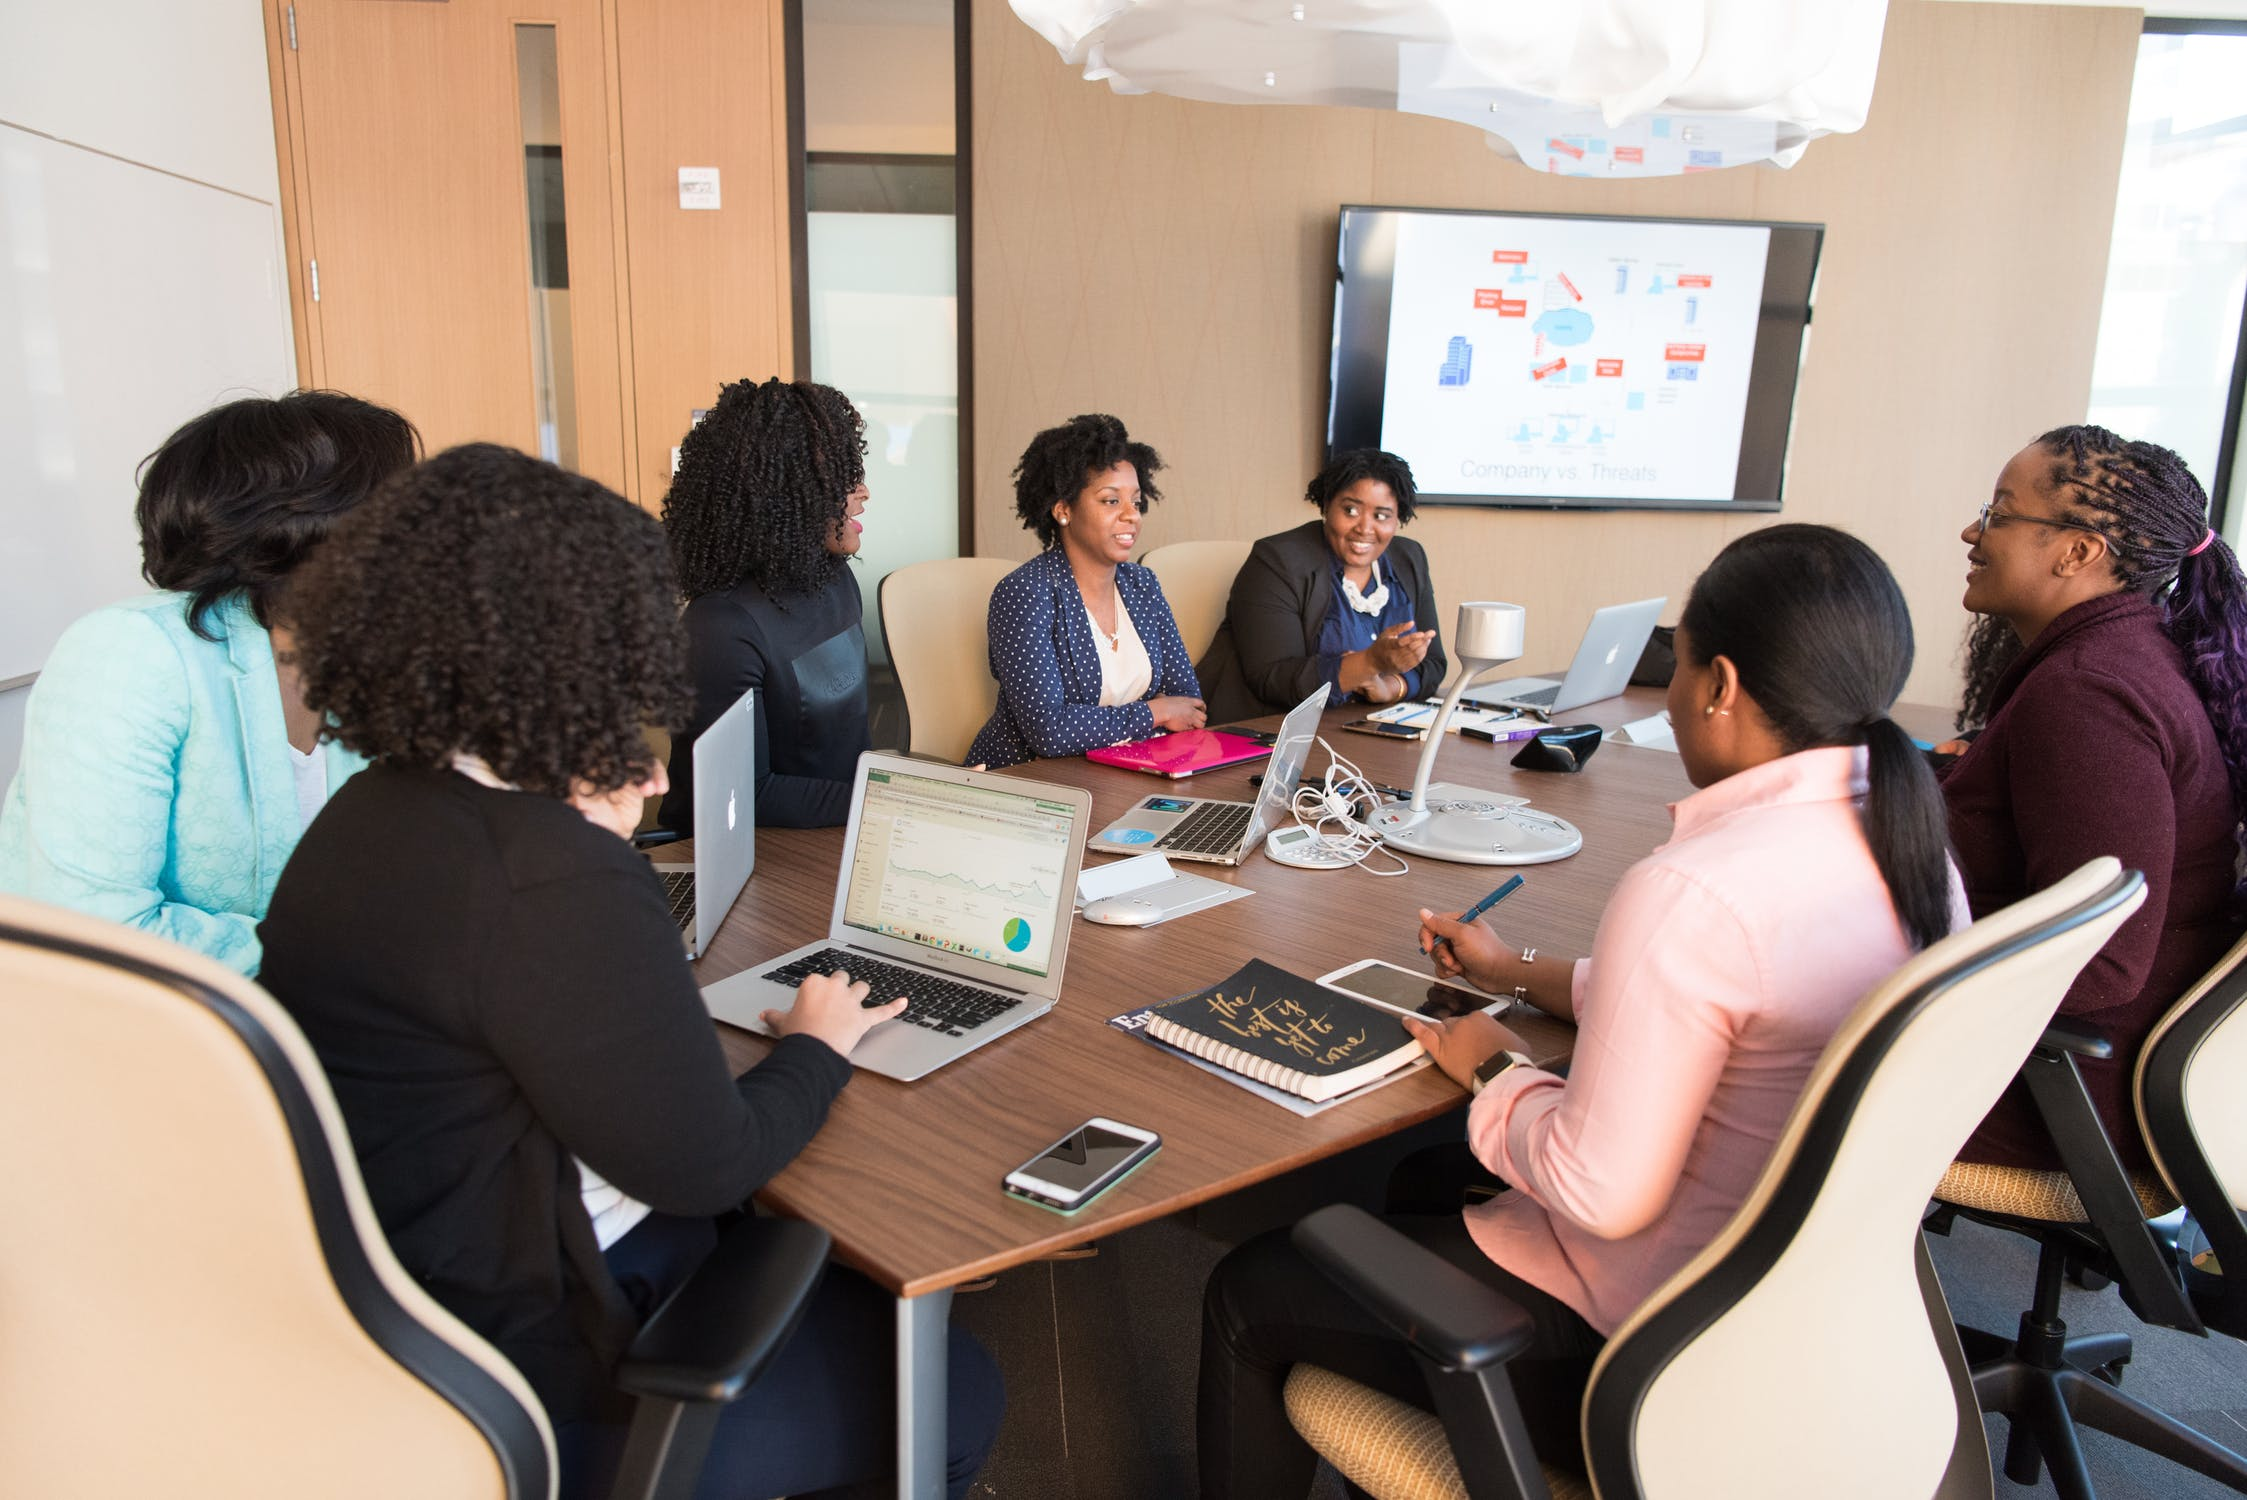 Training - the Most Overlooked Communication Method for OCM